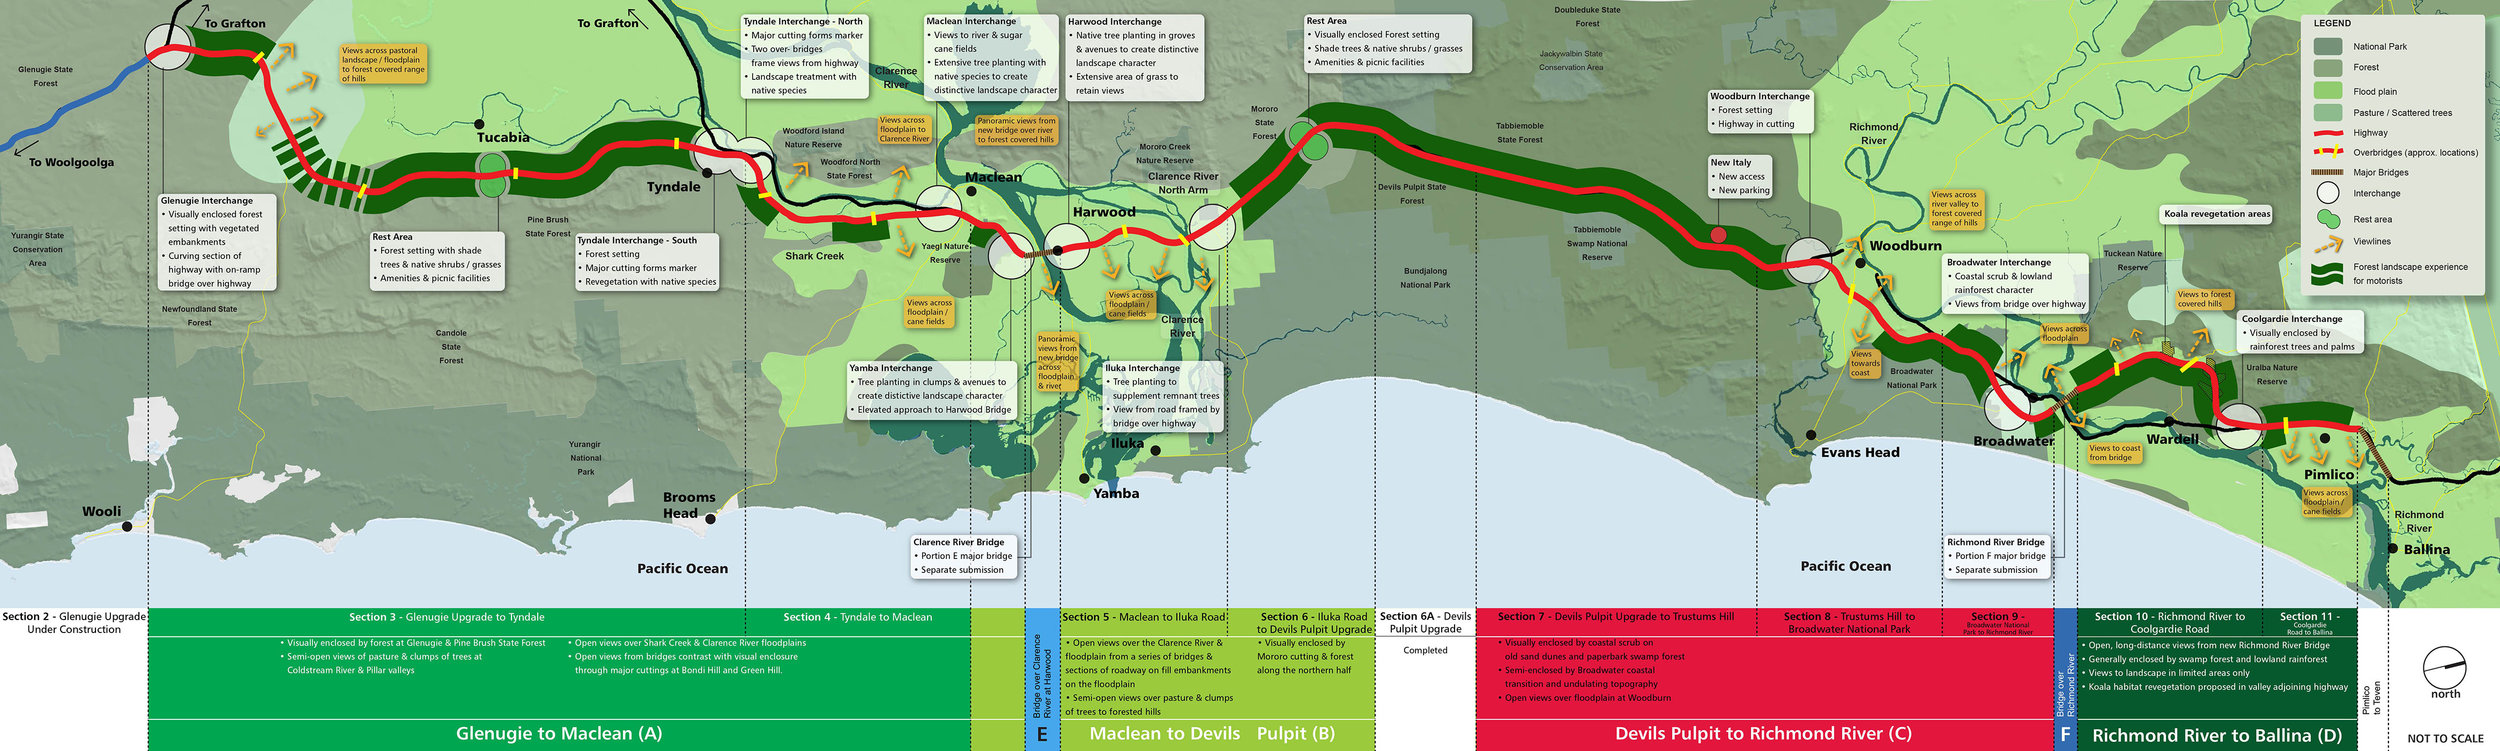 Strategy diagram for Woolgoolga to Ballina upgrade - Corkery Consulting + Studio Colin Polwarth